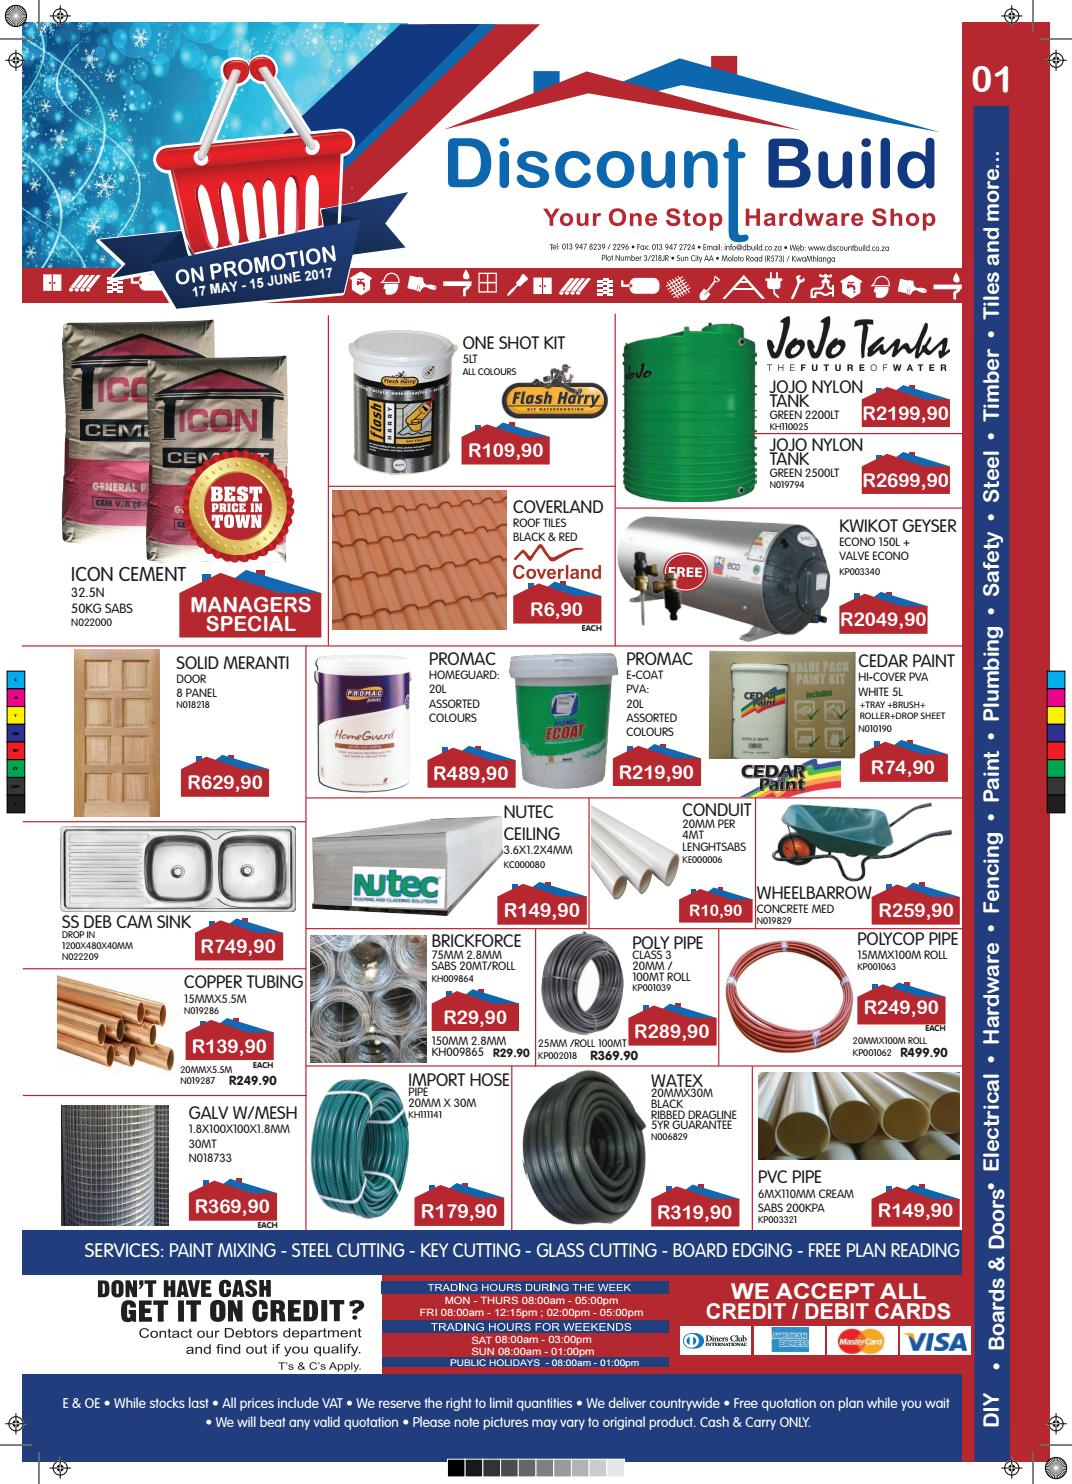 Discount Build Kwamhlanga Winter Promotion 2017 By E H